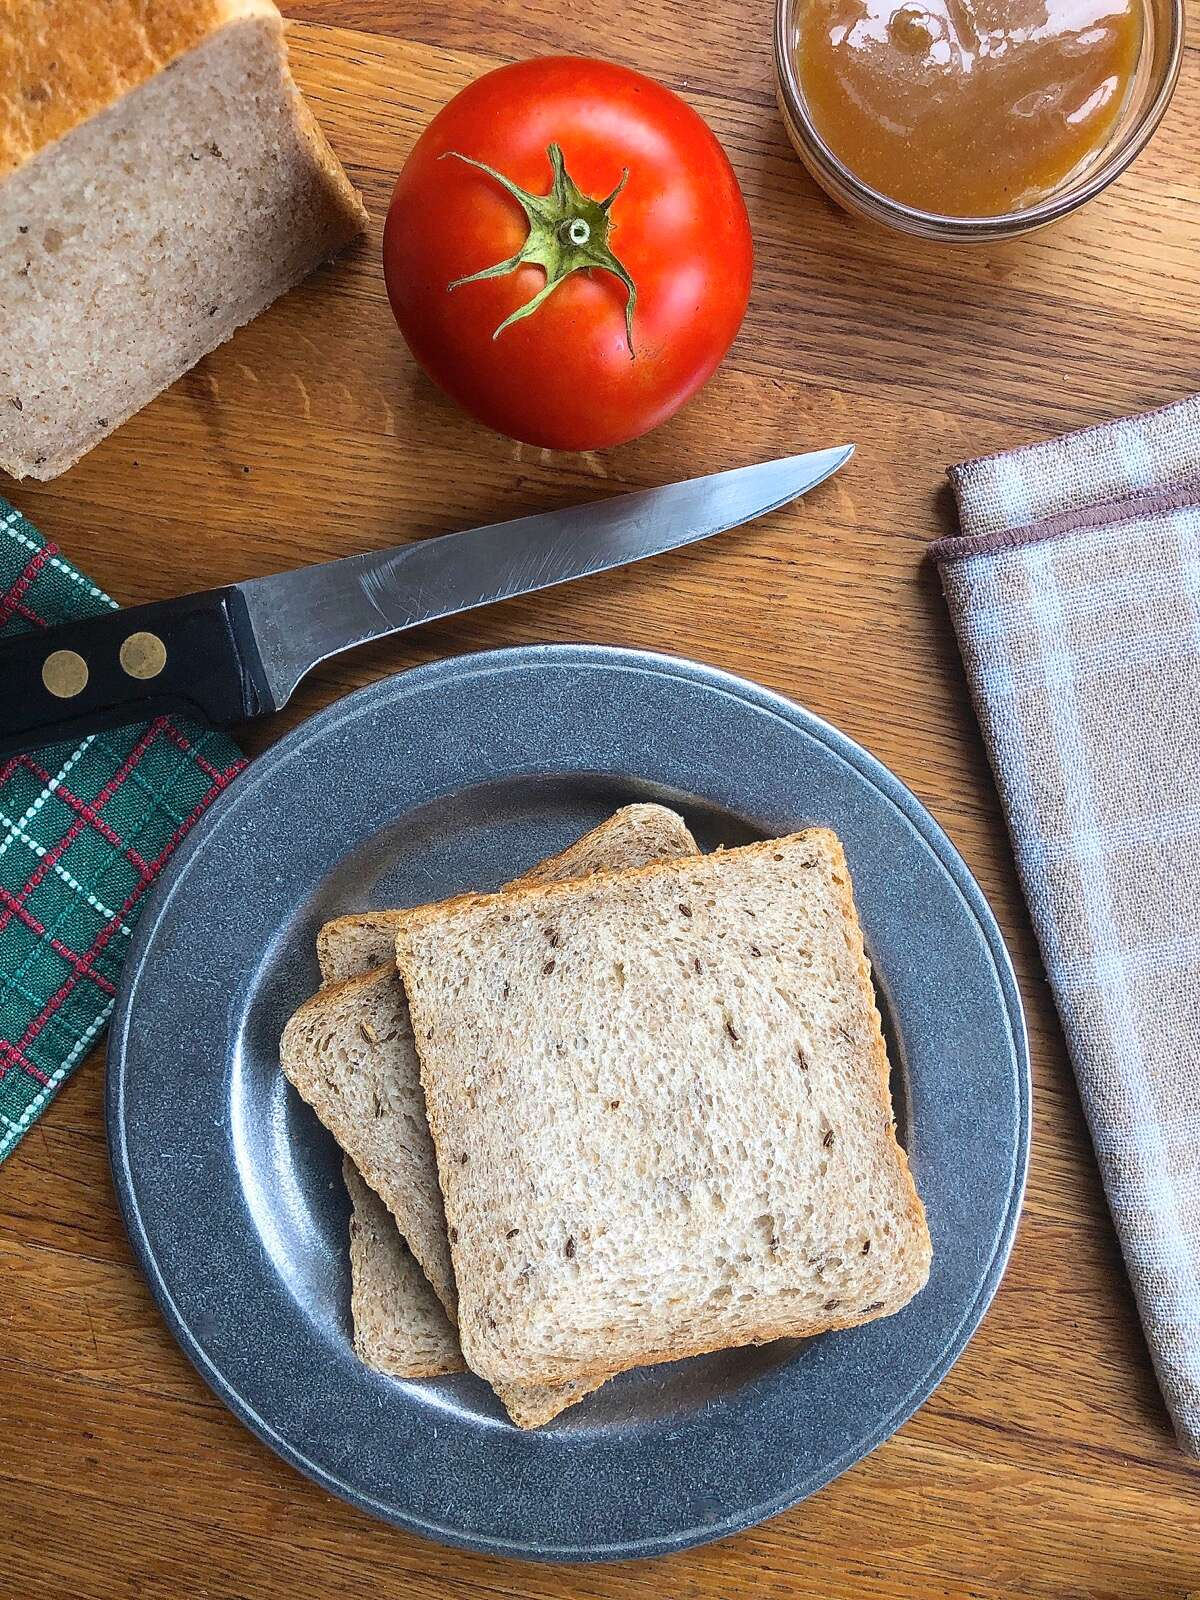 Sliced rye bread on a plate, ready to make into a sandwich.